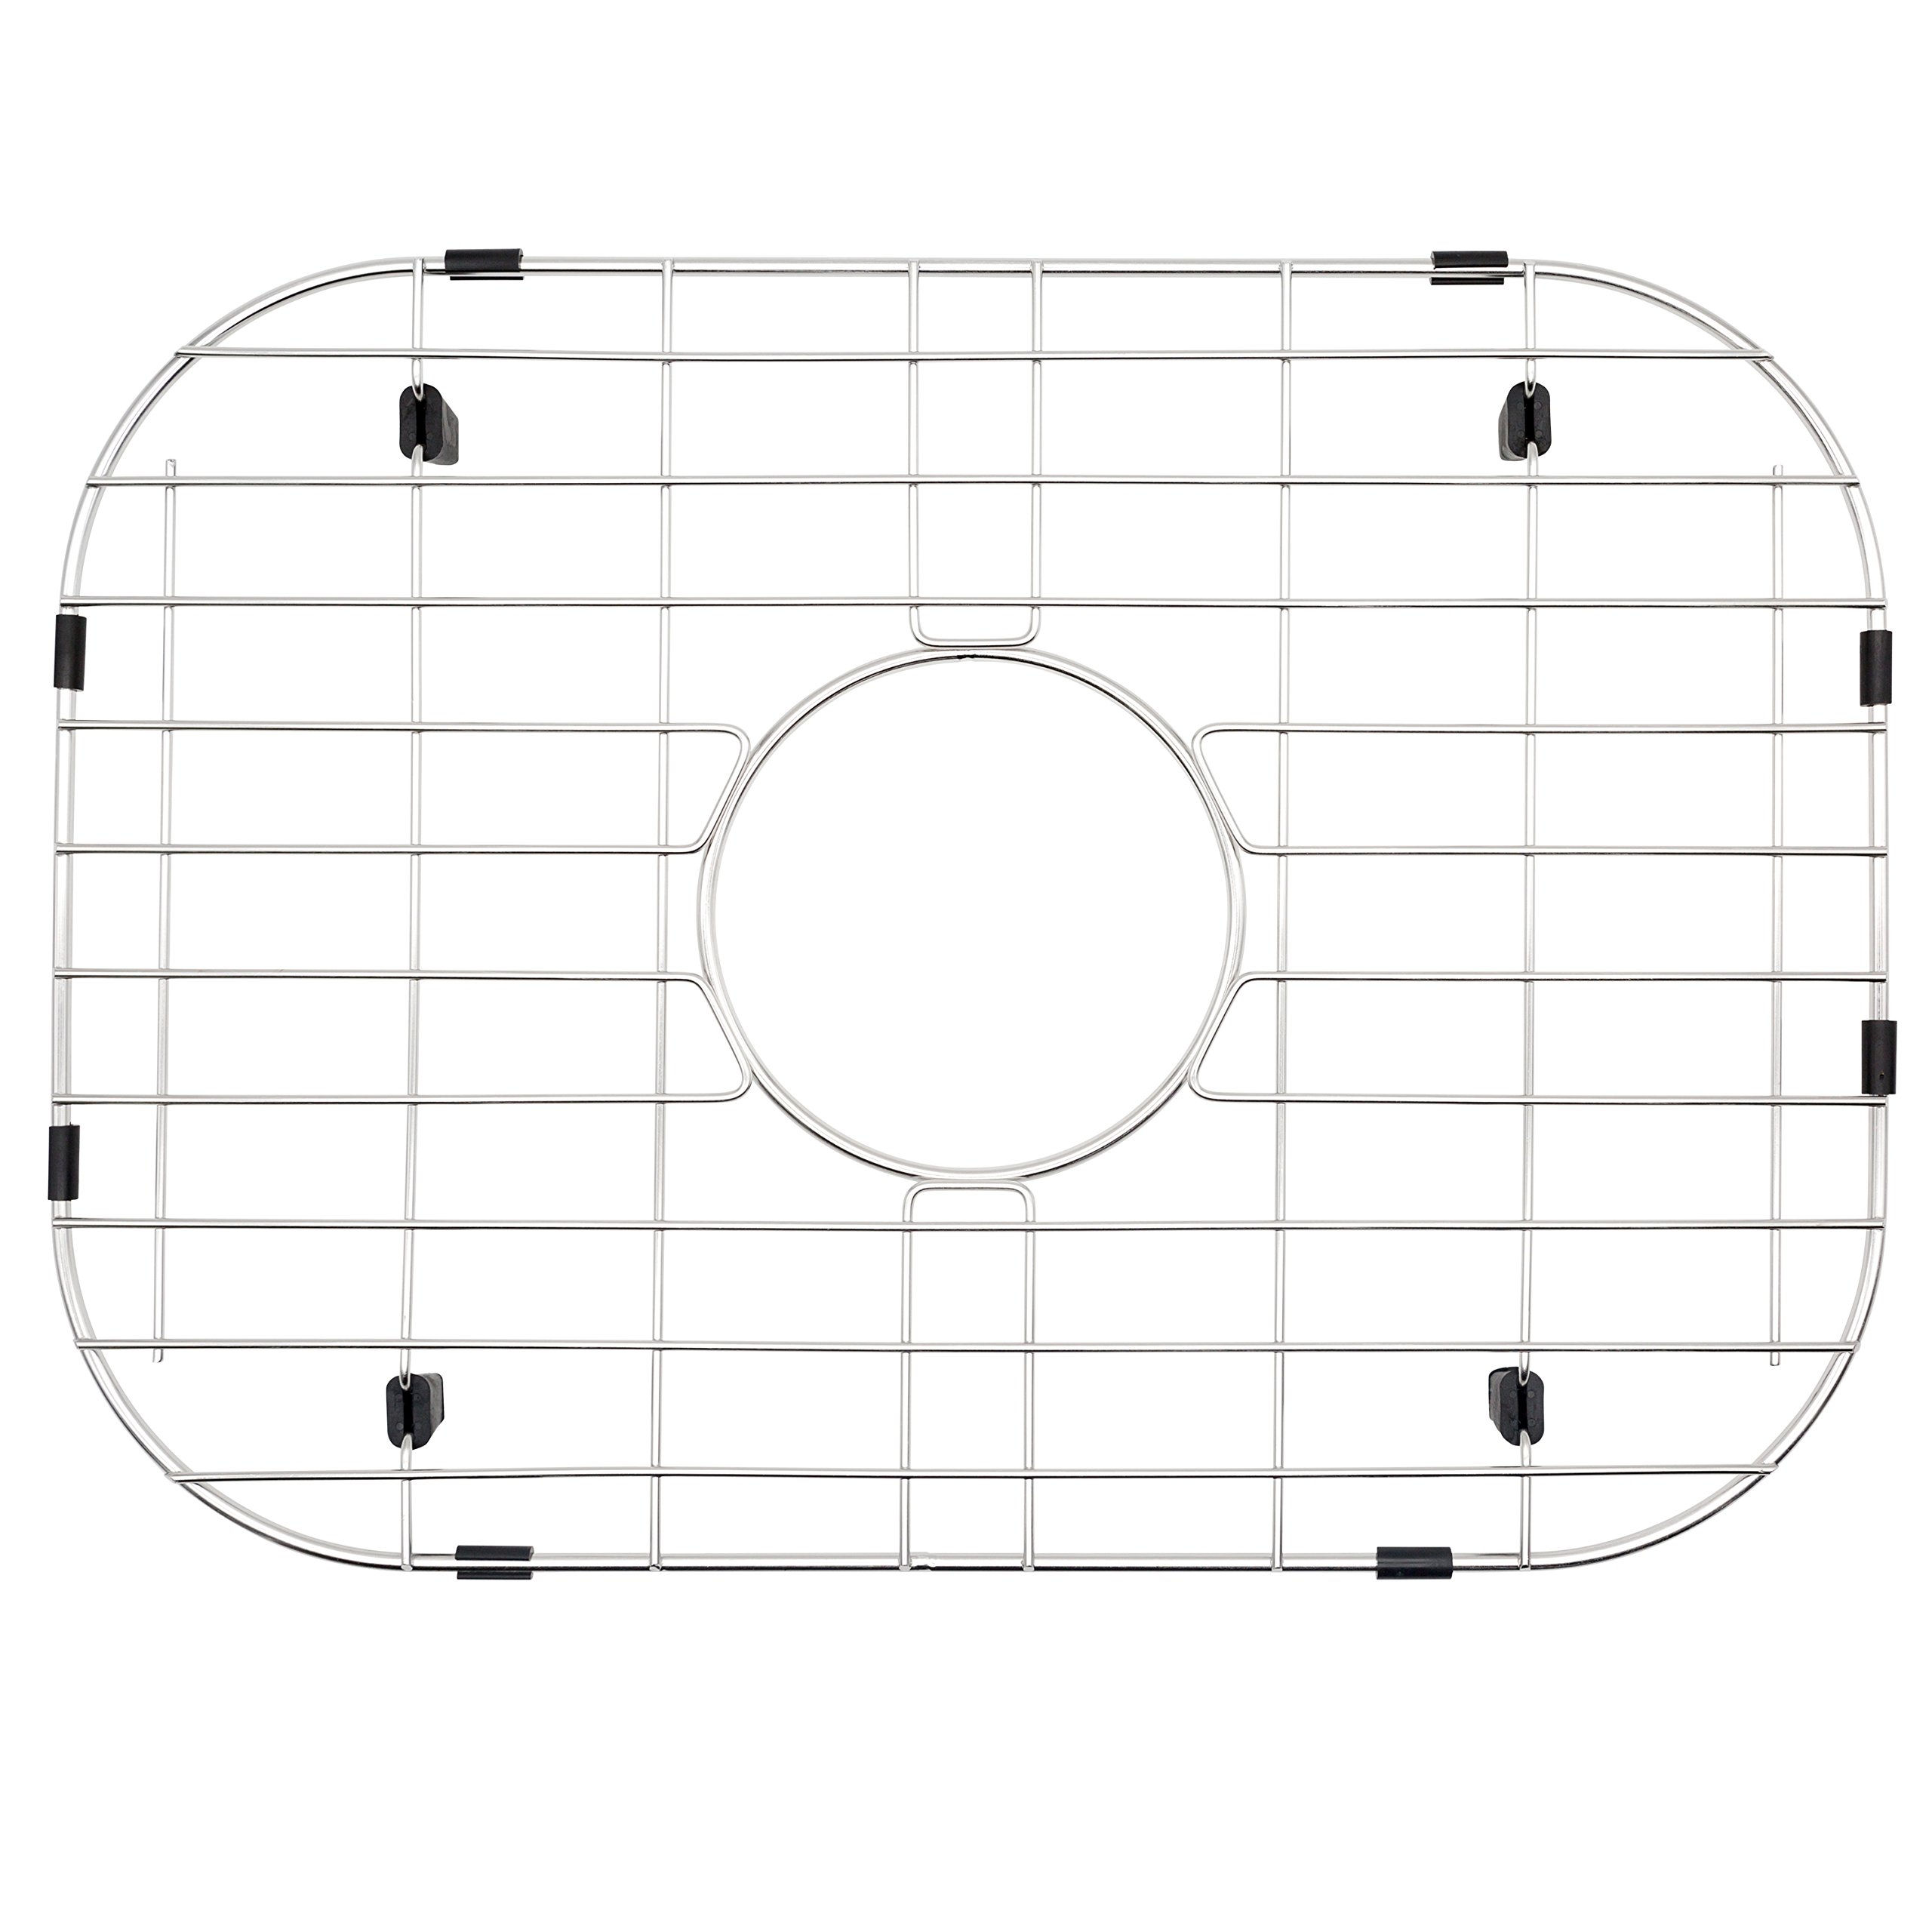 NWC Sink Protector, Metal Grid for Stainless Steel Kitchen Sinks | 18 in X 13 in | Best for Protecting Your Sink by NWC